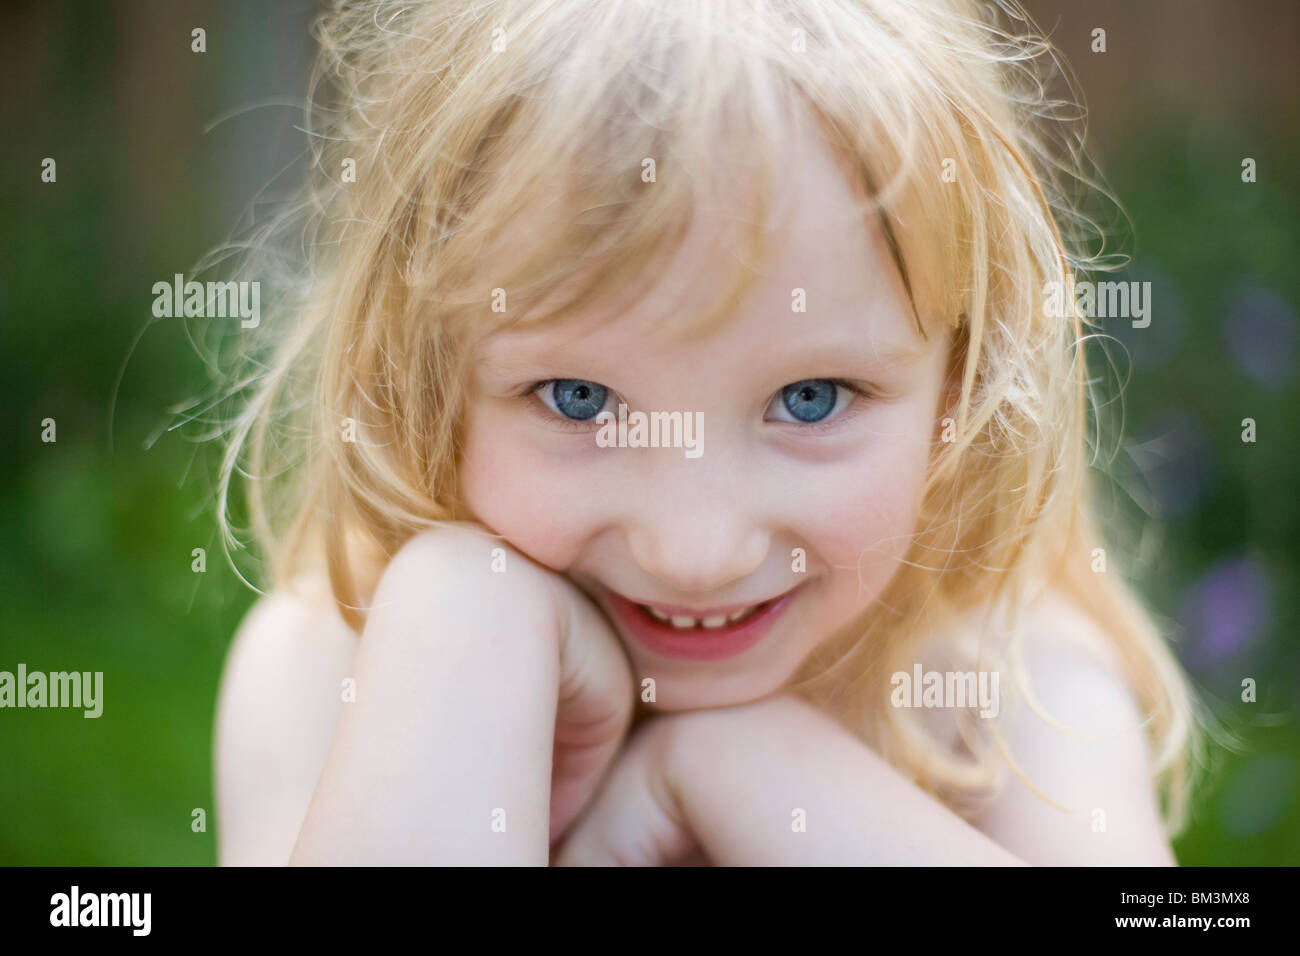 portrait of happy 4 year old girl - Stock Image